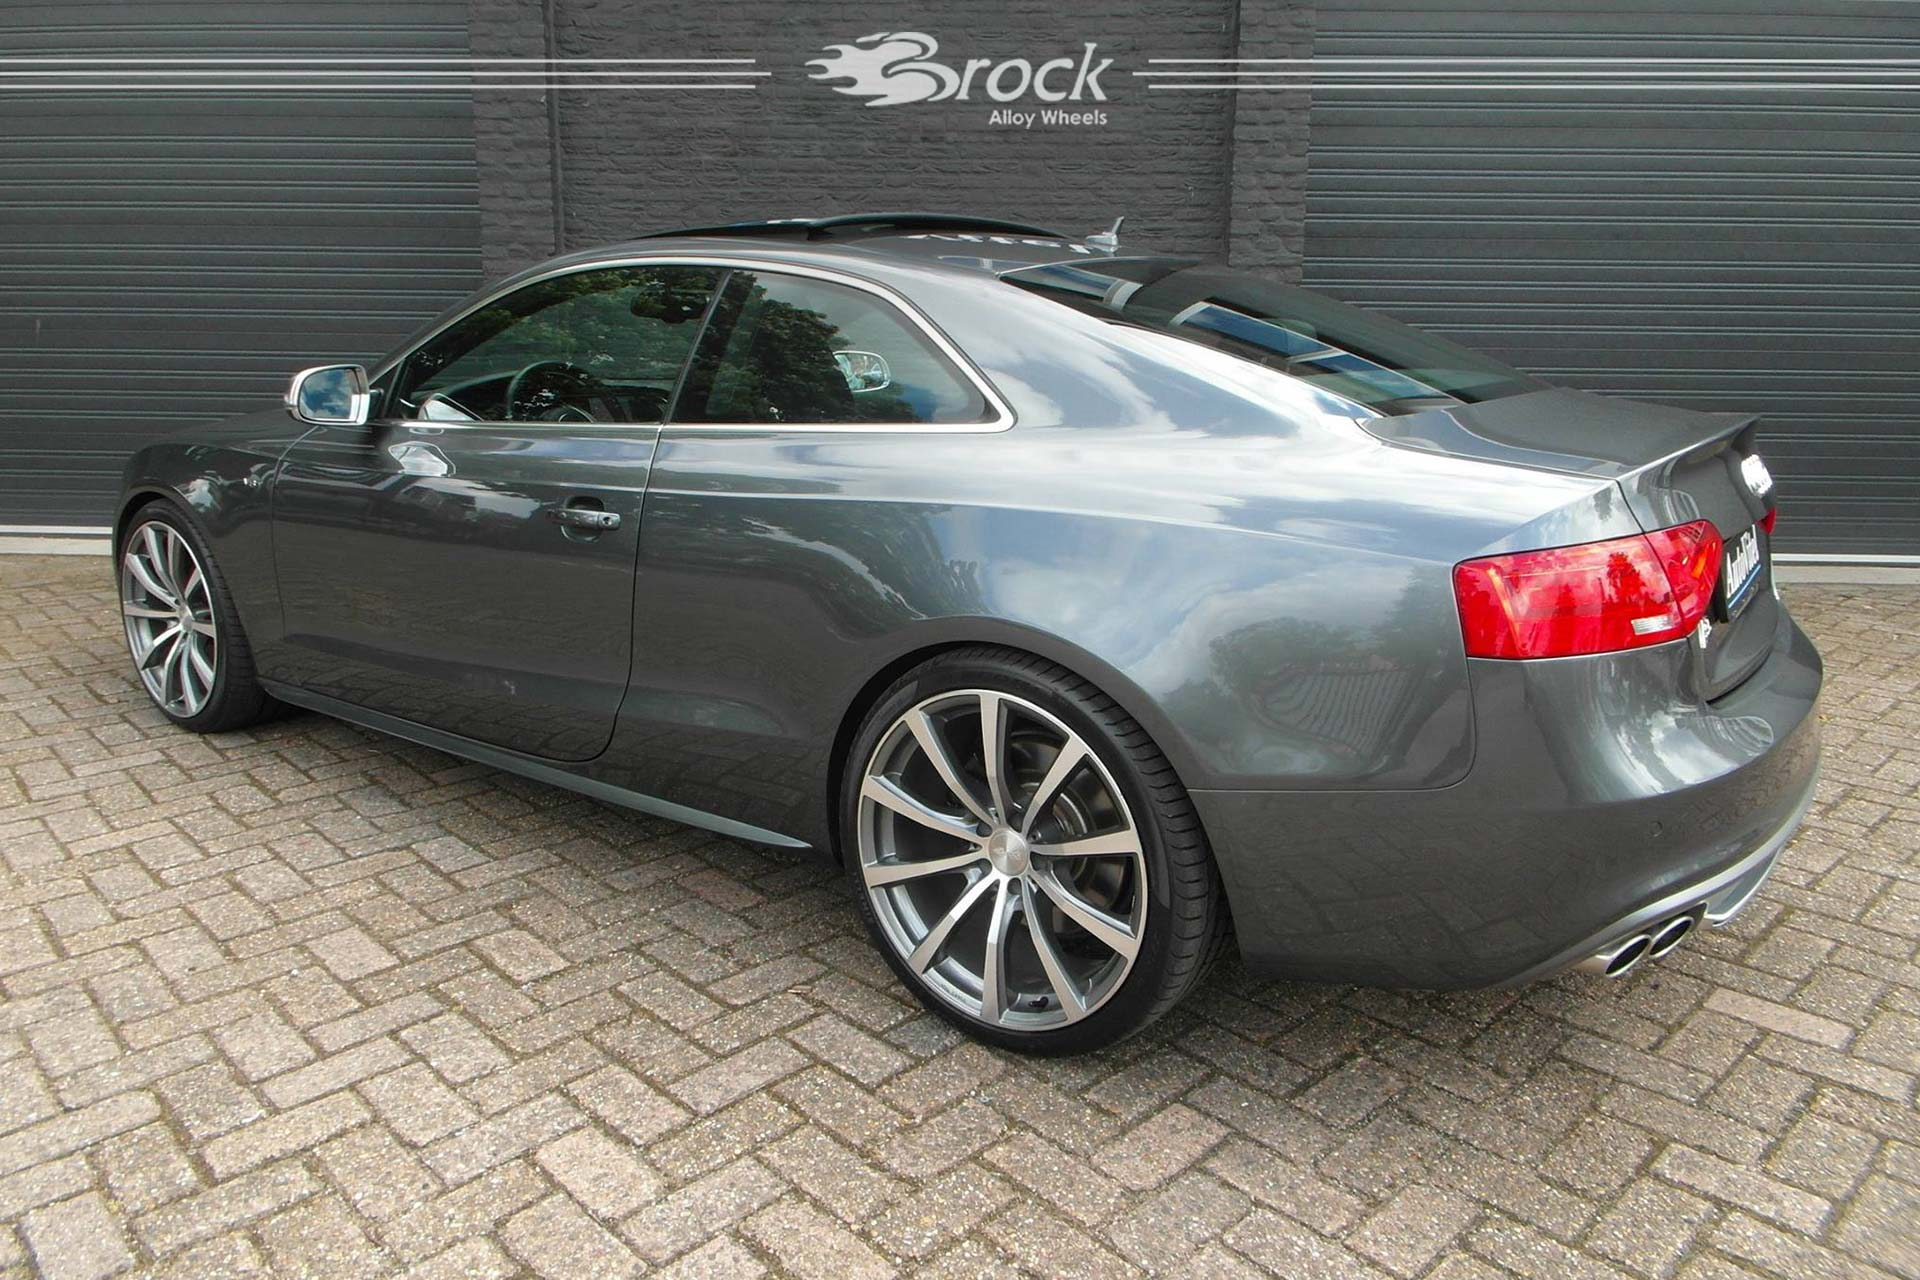 Audi S5 Coupe Brock B32 9520 HGVP